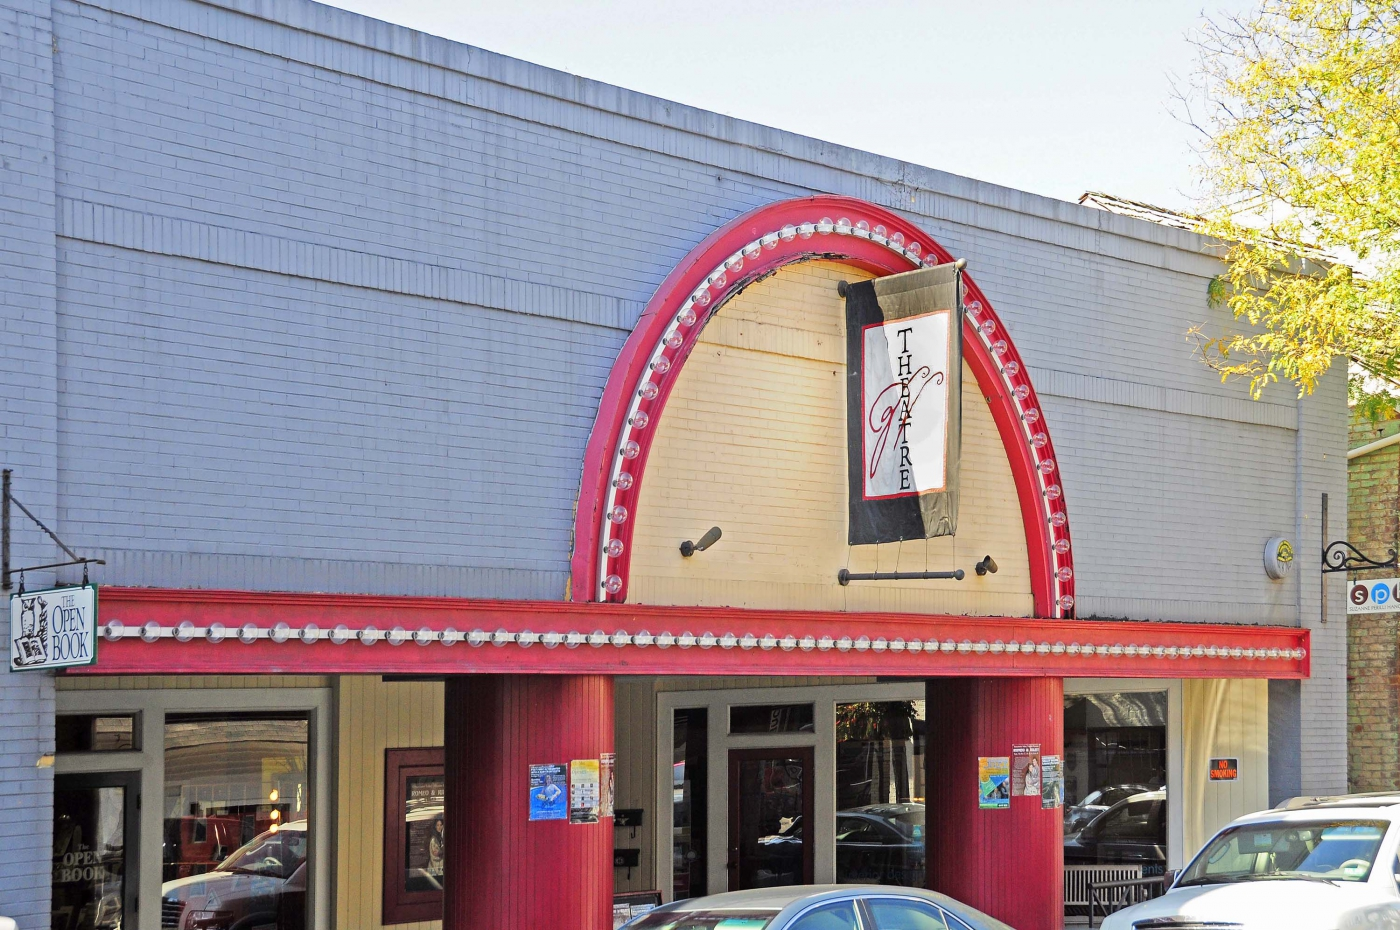 Take in a comedy, drama or musical at the Greenbrier Valley Theatre in Lewisburg